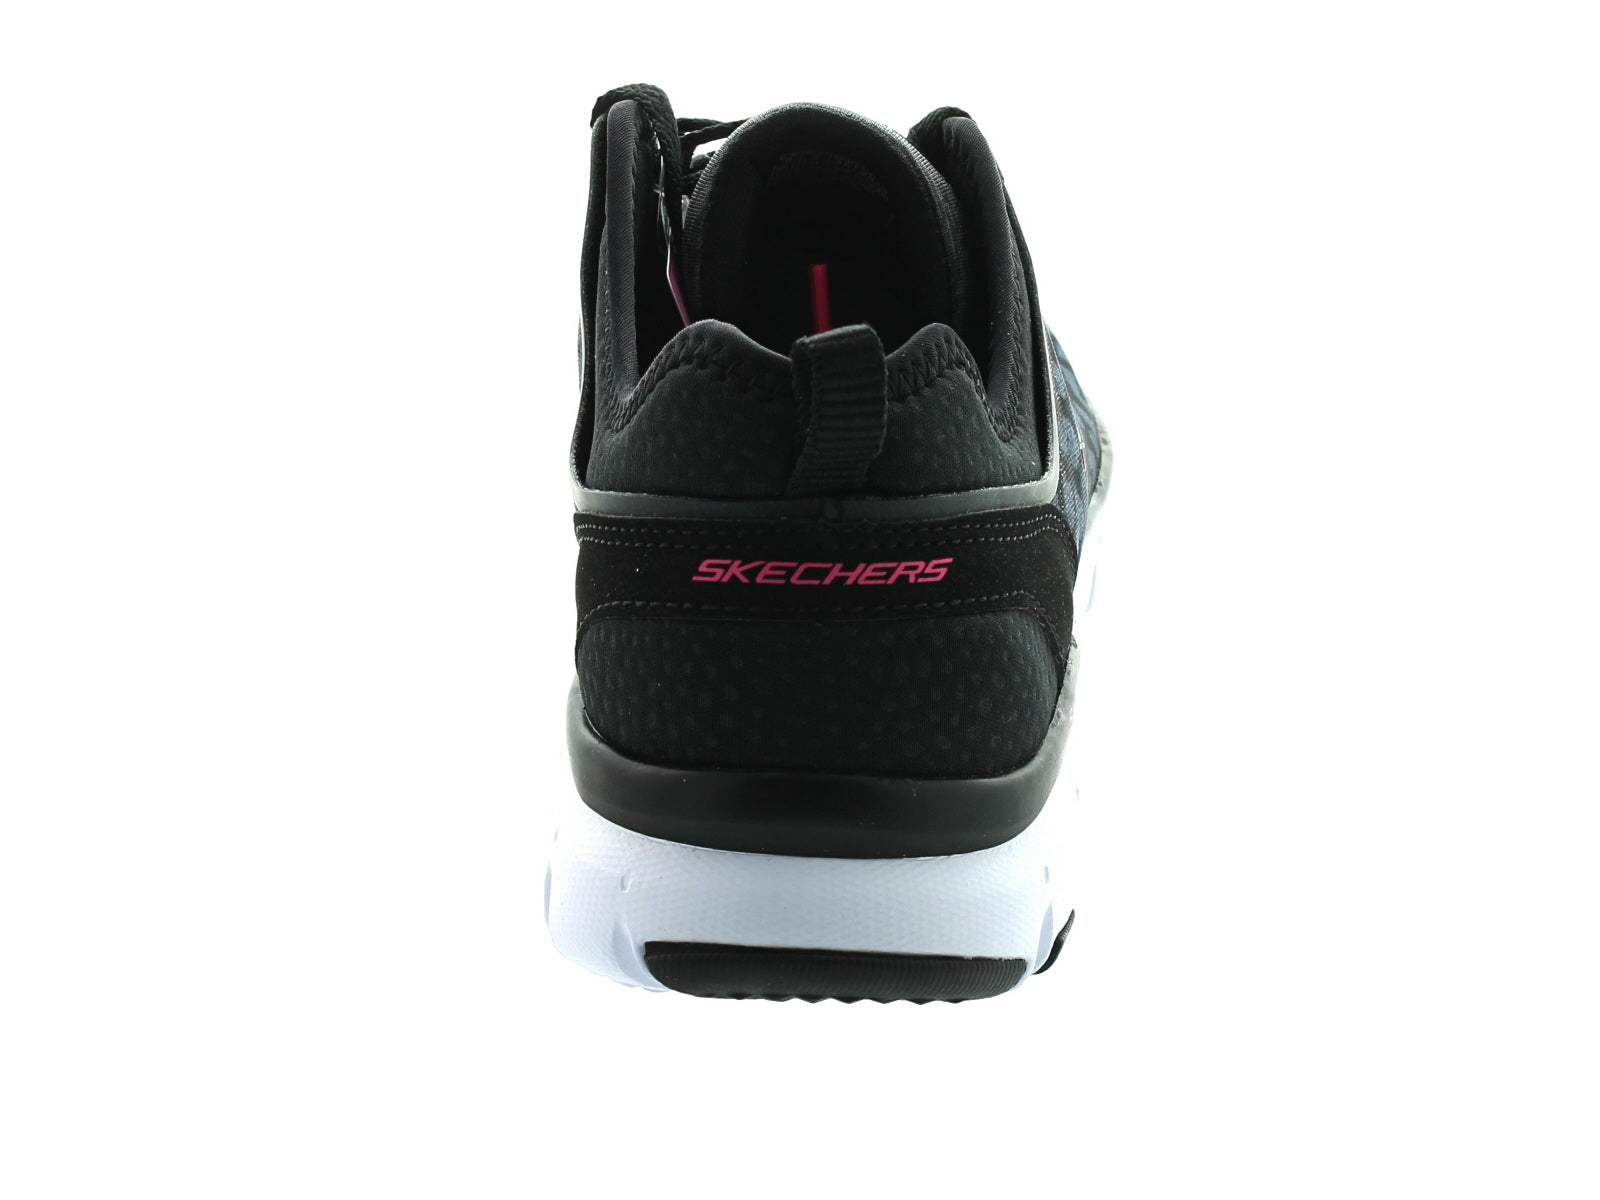 Skechers Sketch-Flex-Power-Player 12131 in black/white back view